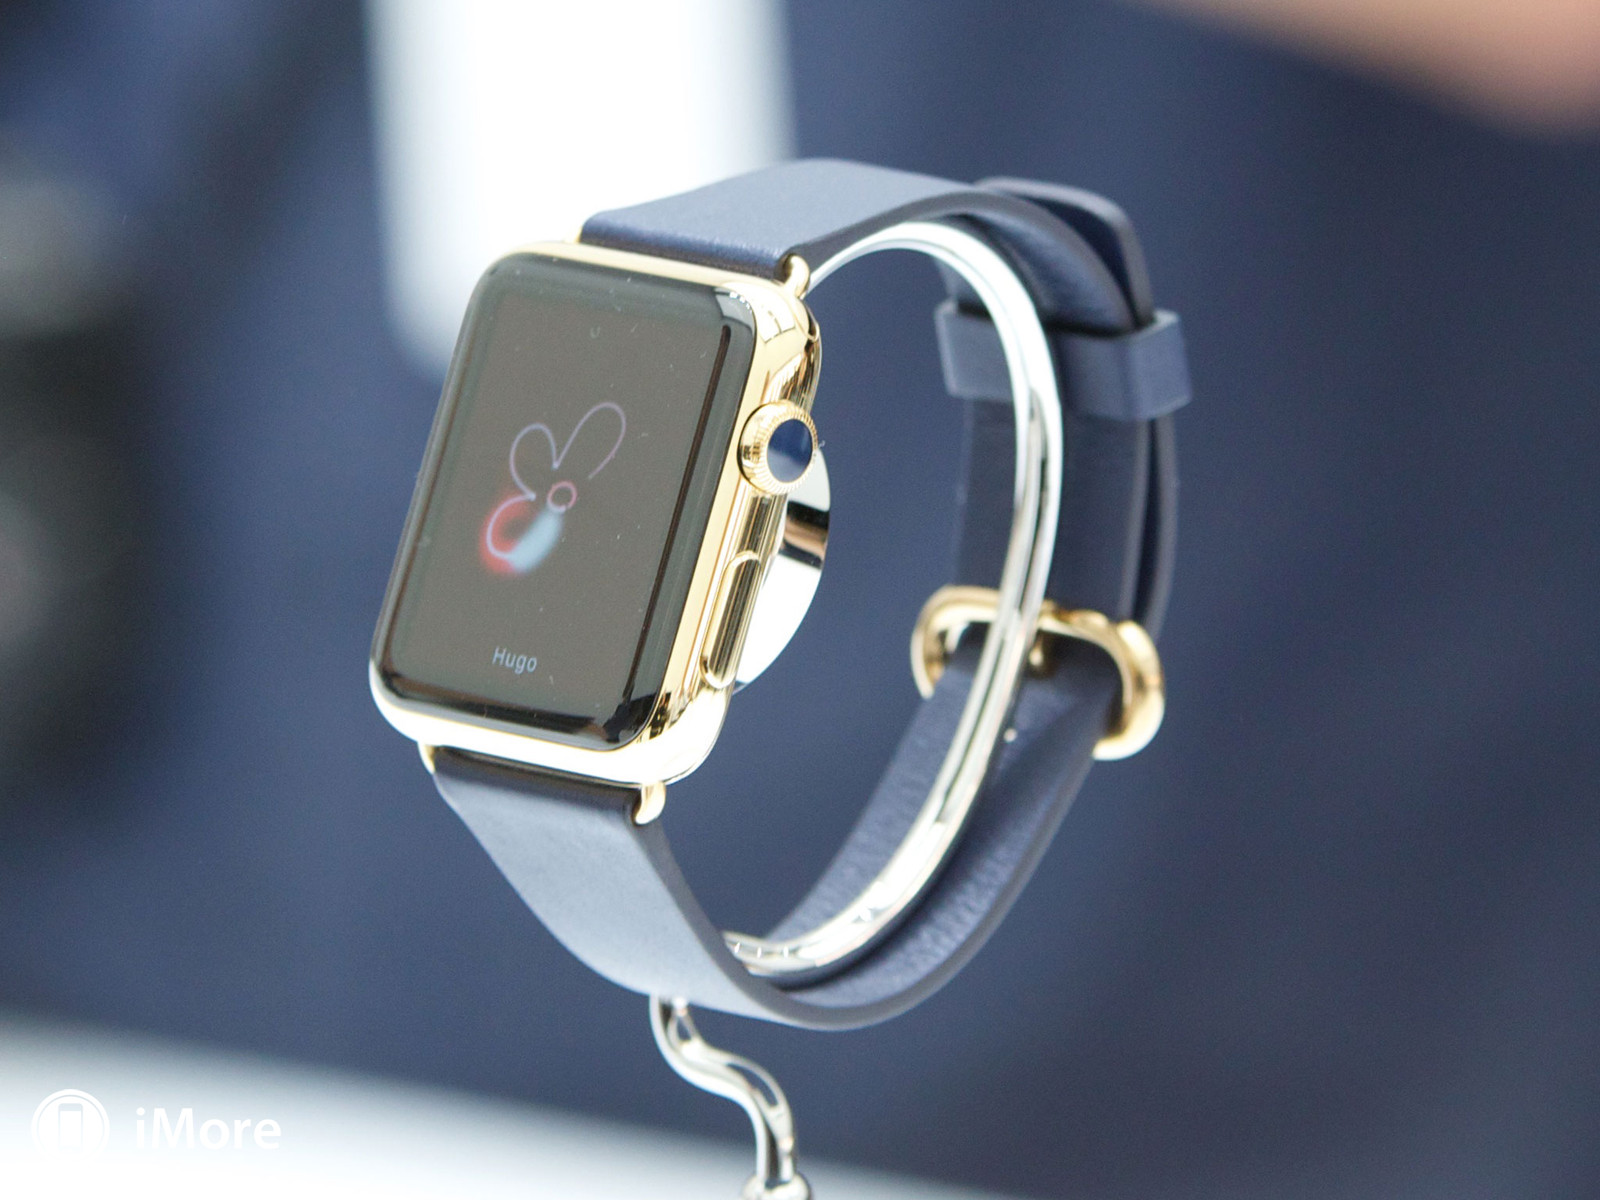 Apple Watch: All you need to know